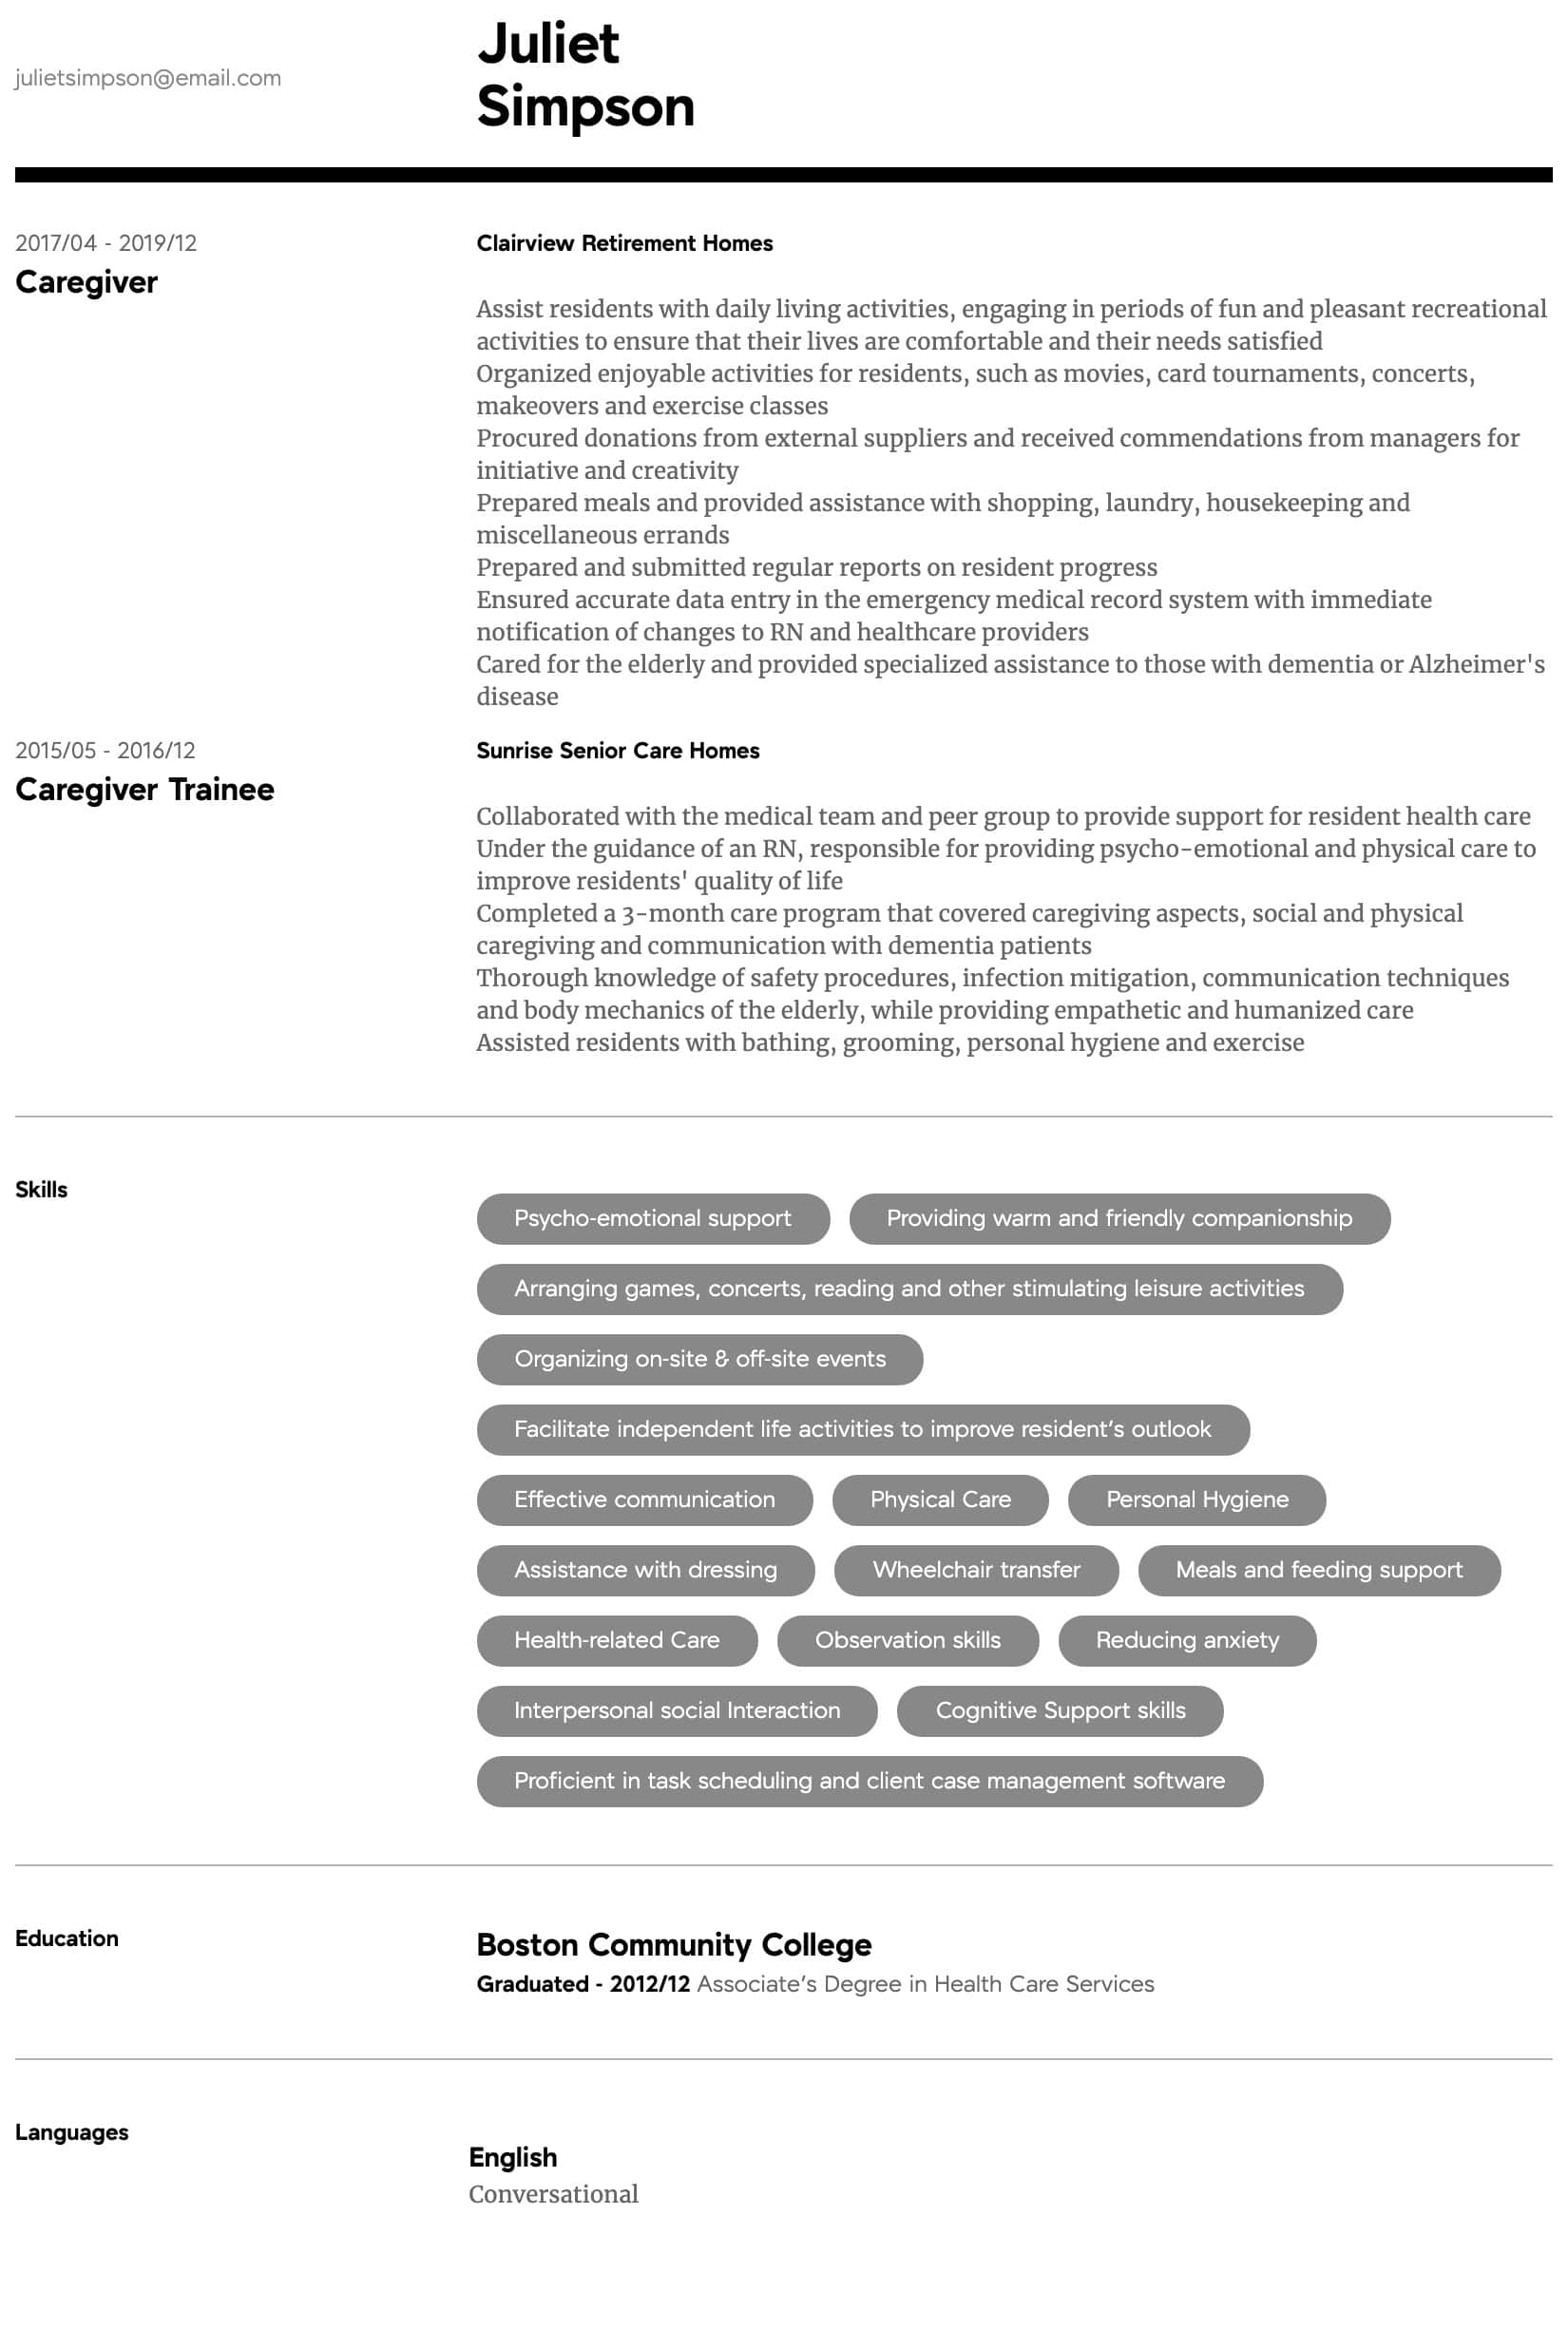 caregiver resume samples all experience levels examples for skills intermediate refrences Resume Resume Examples For Caregiver Skills